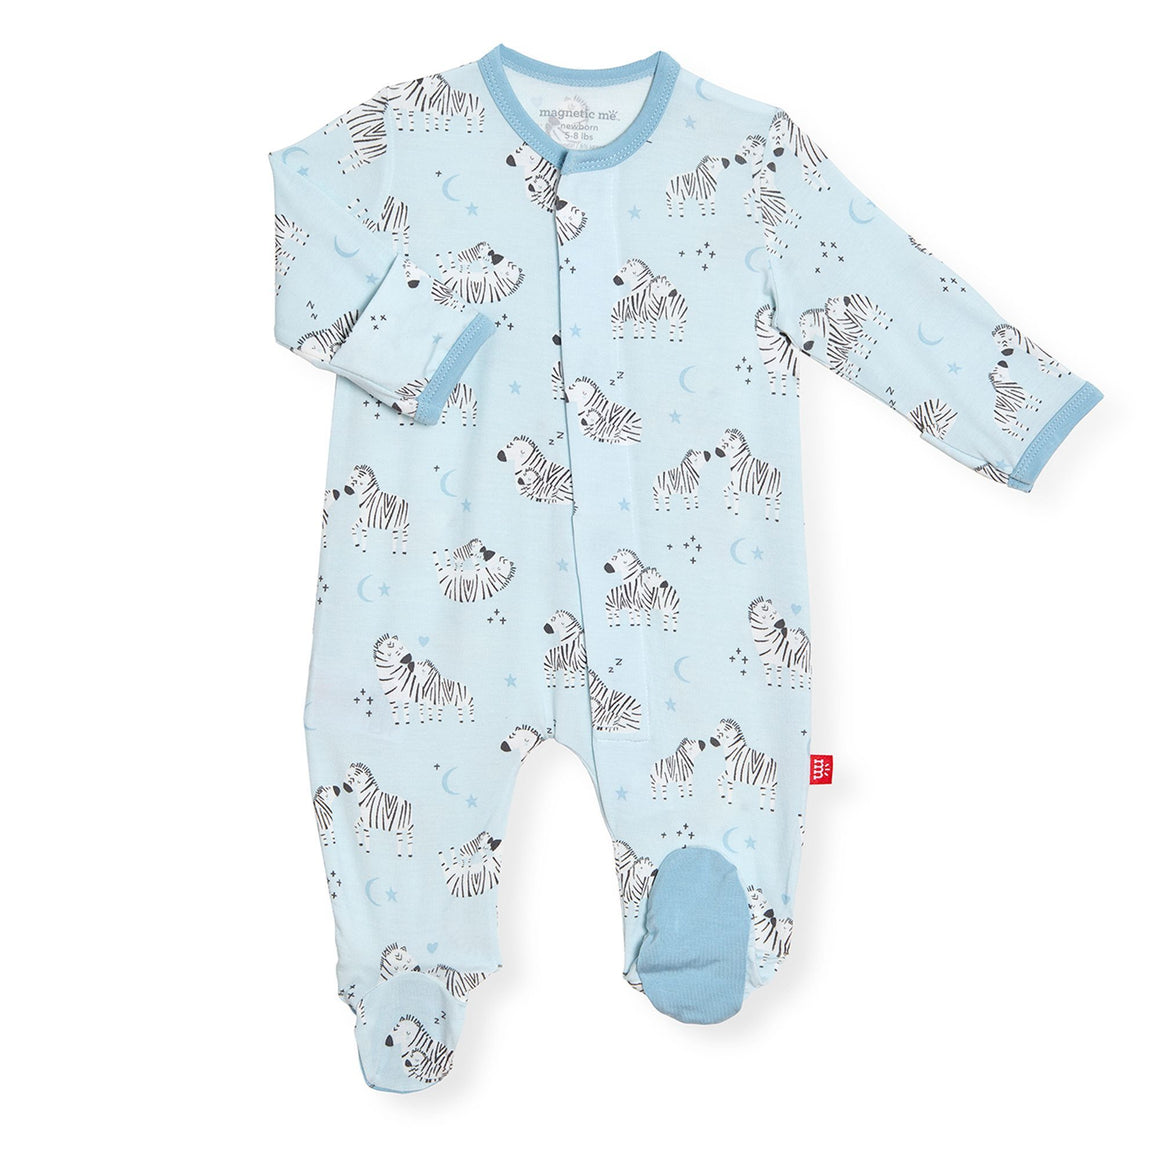 Magnificent Baby Apparel Magnetic Me Blue Little One Modal Footie